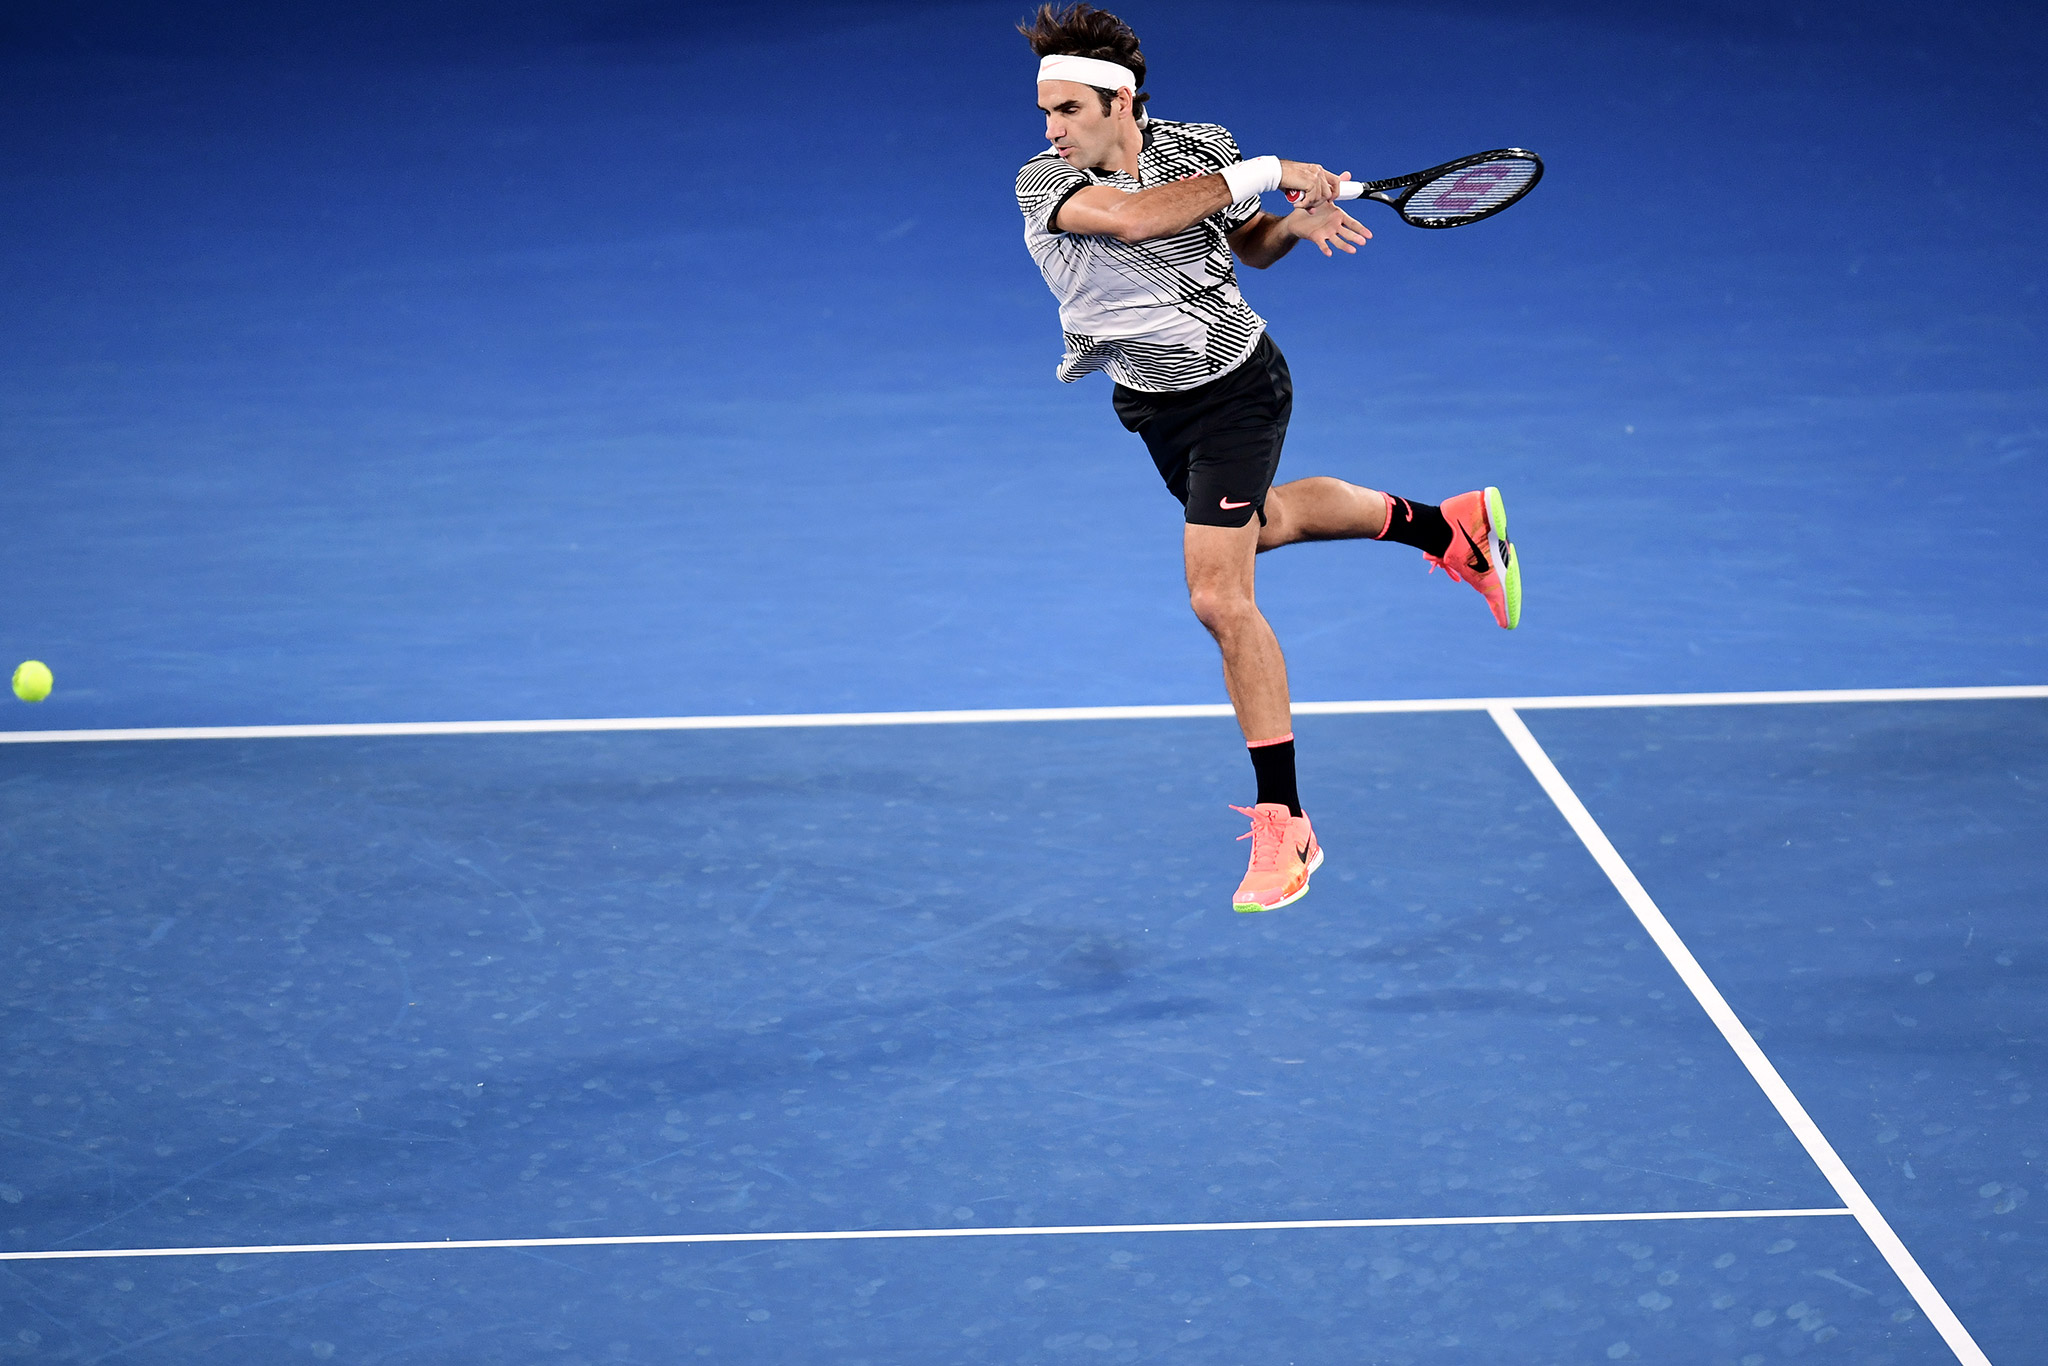 Federer Flies Past Berdych at Australian Open